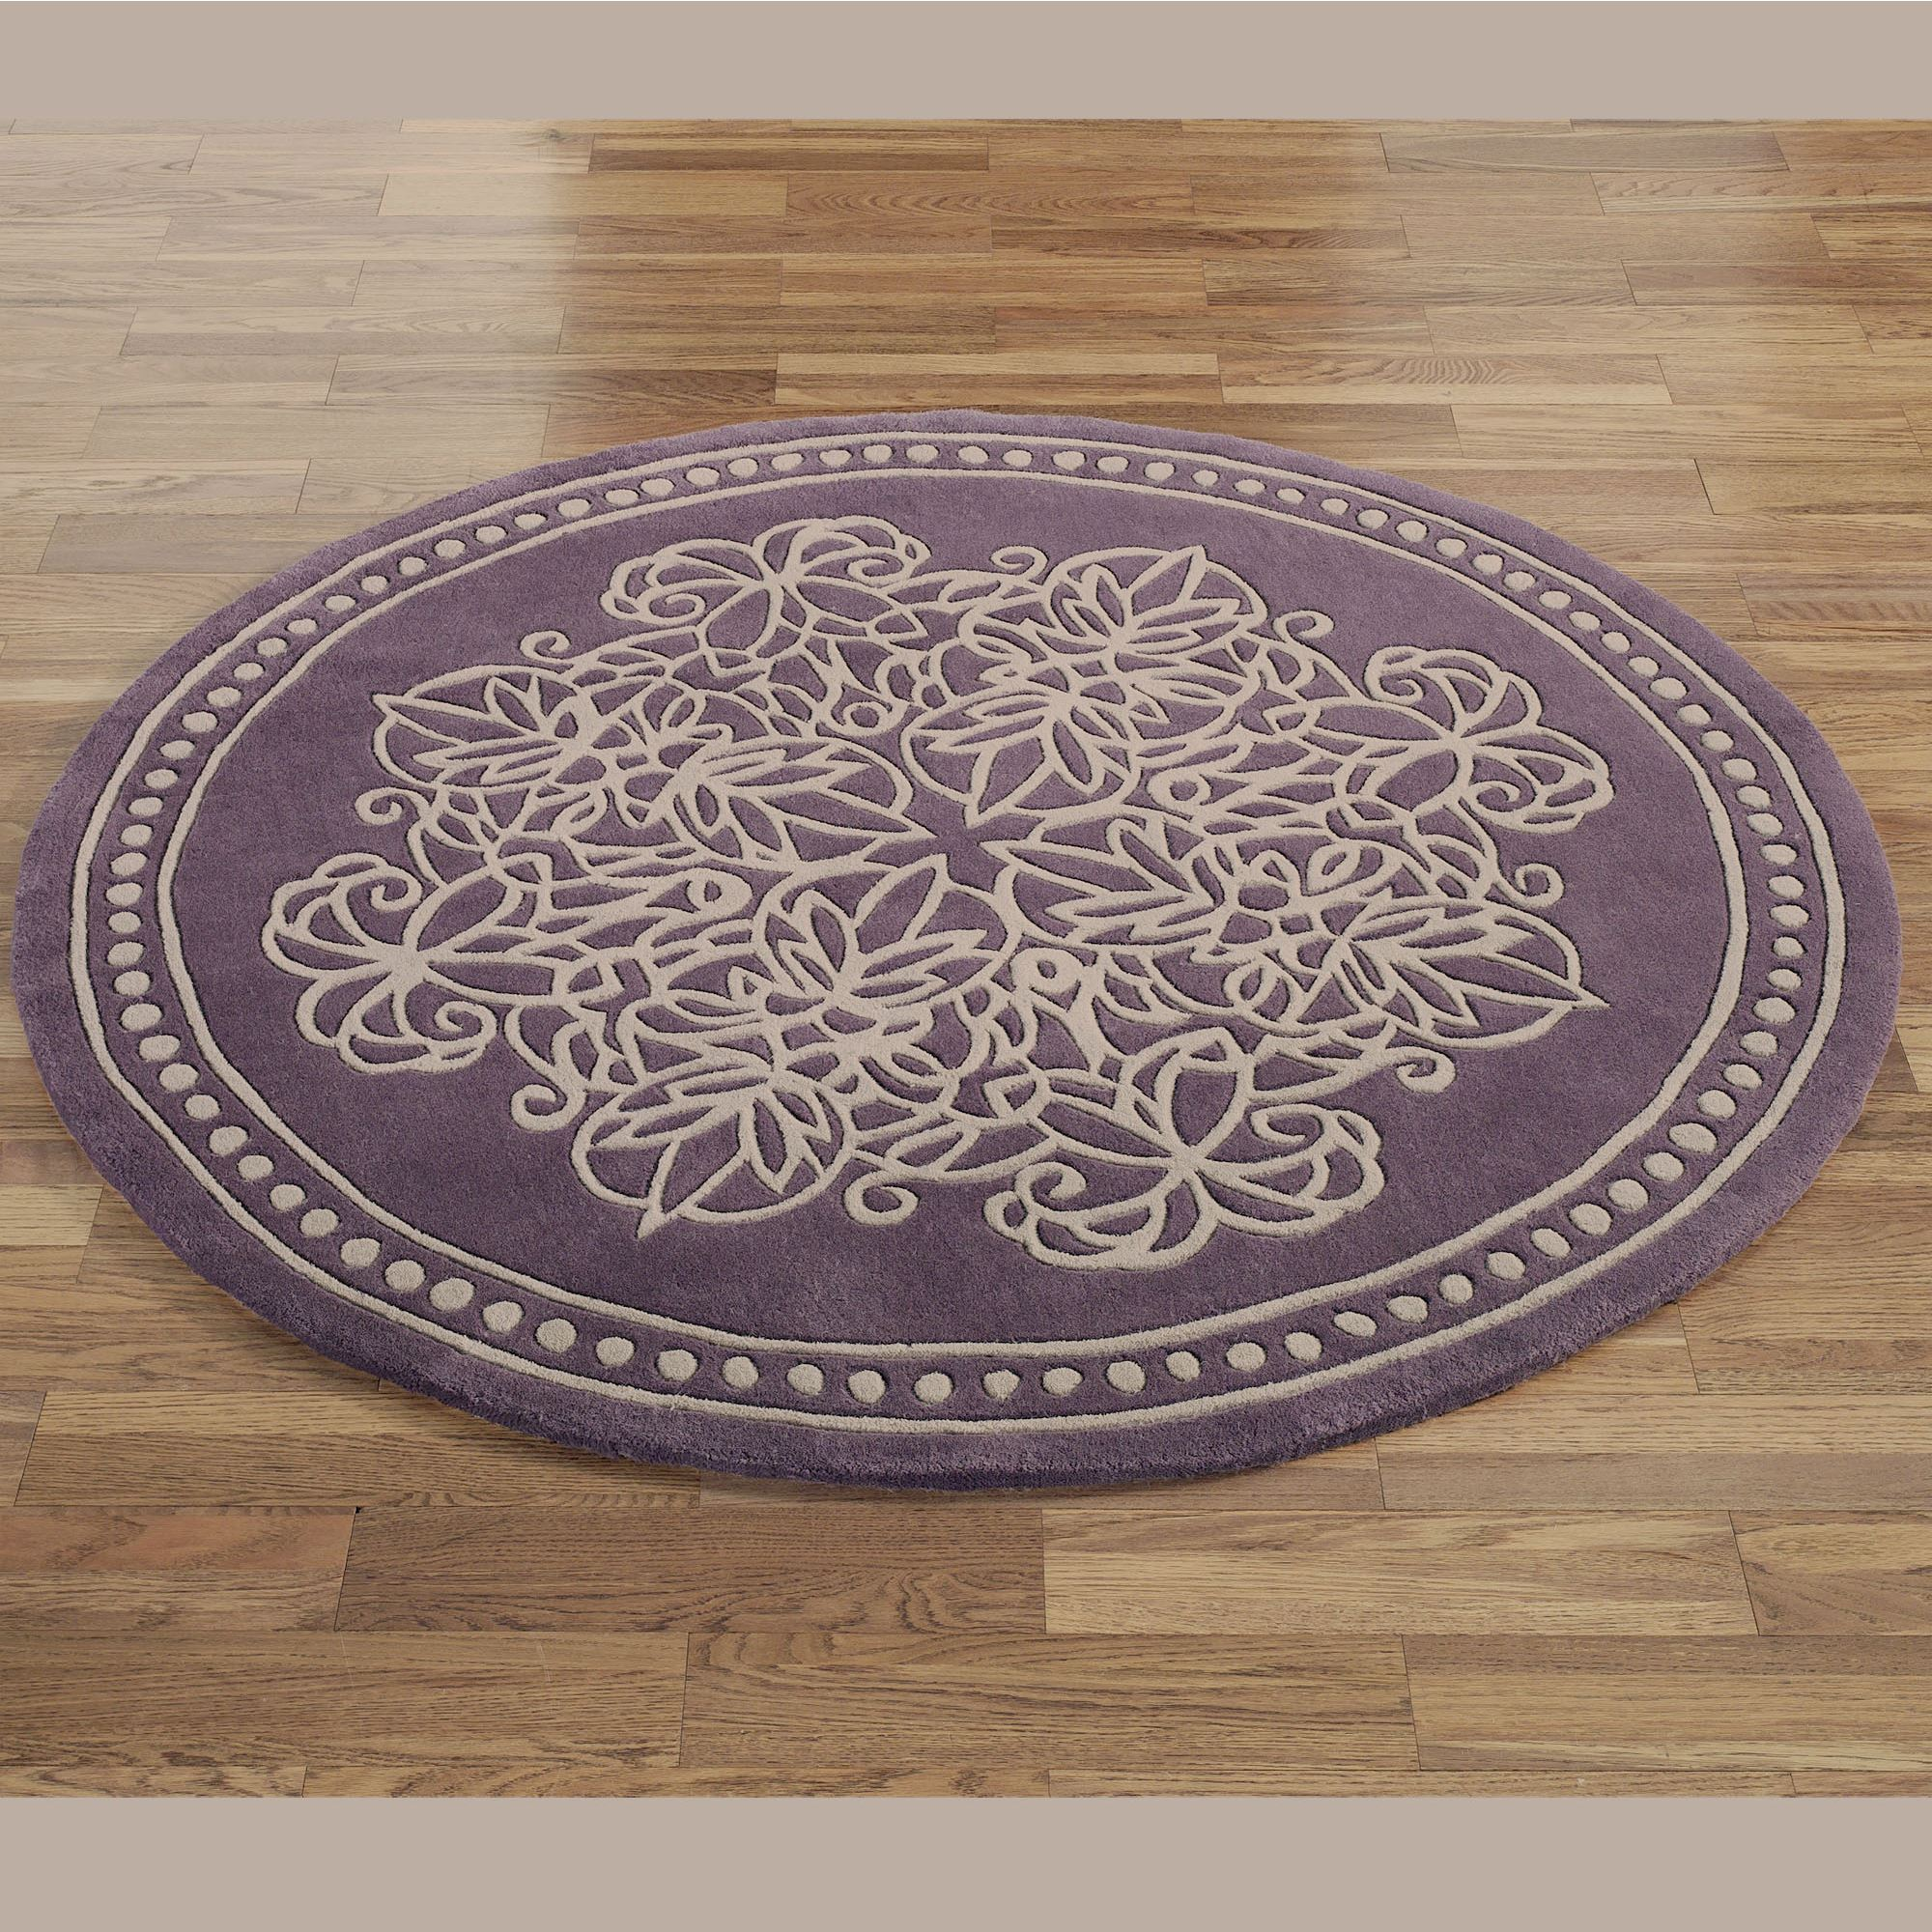 Flower Factory Home Decor Vintage Lace Round Rugs